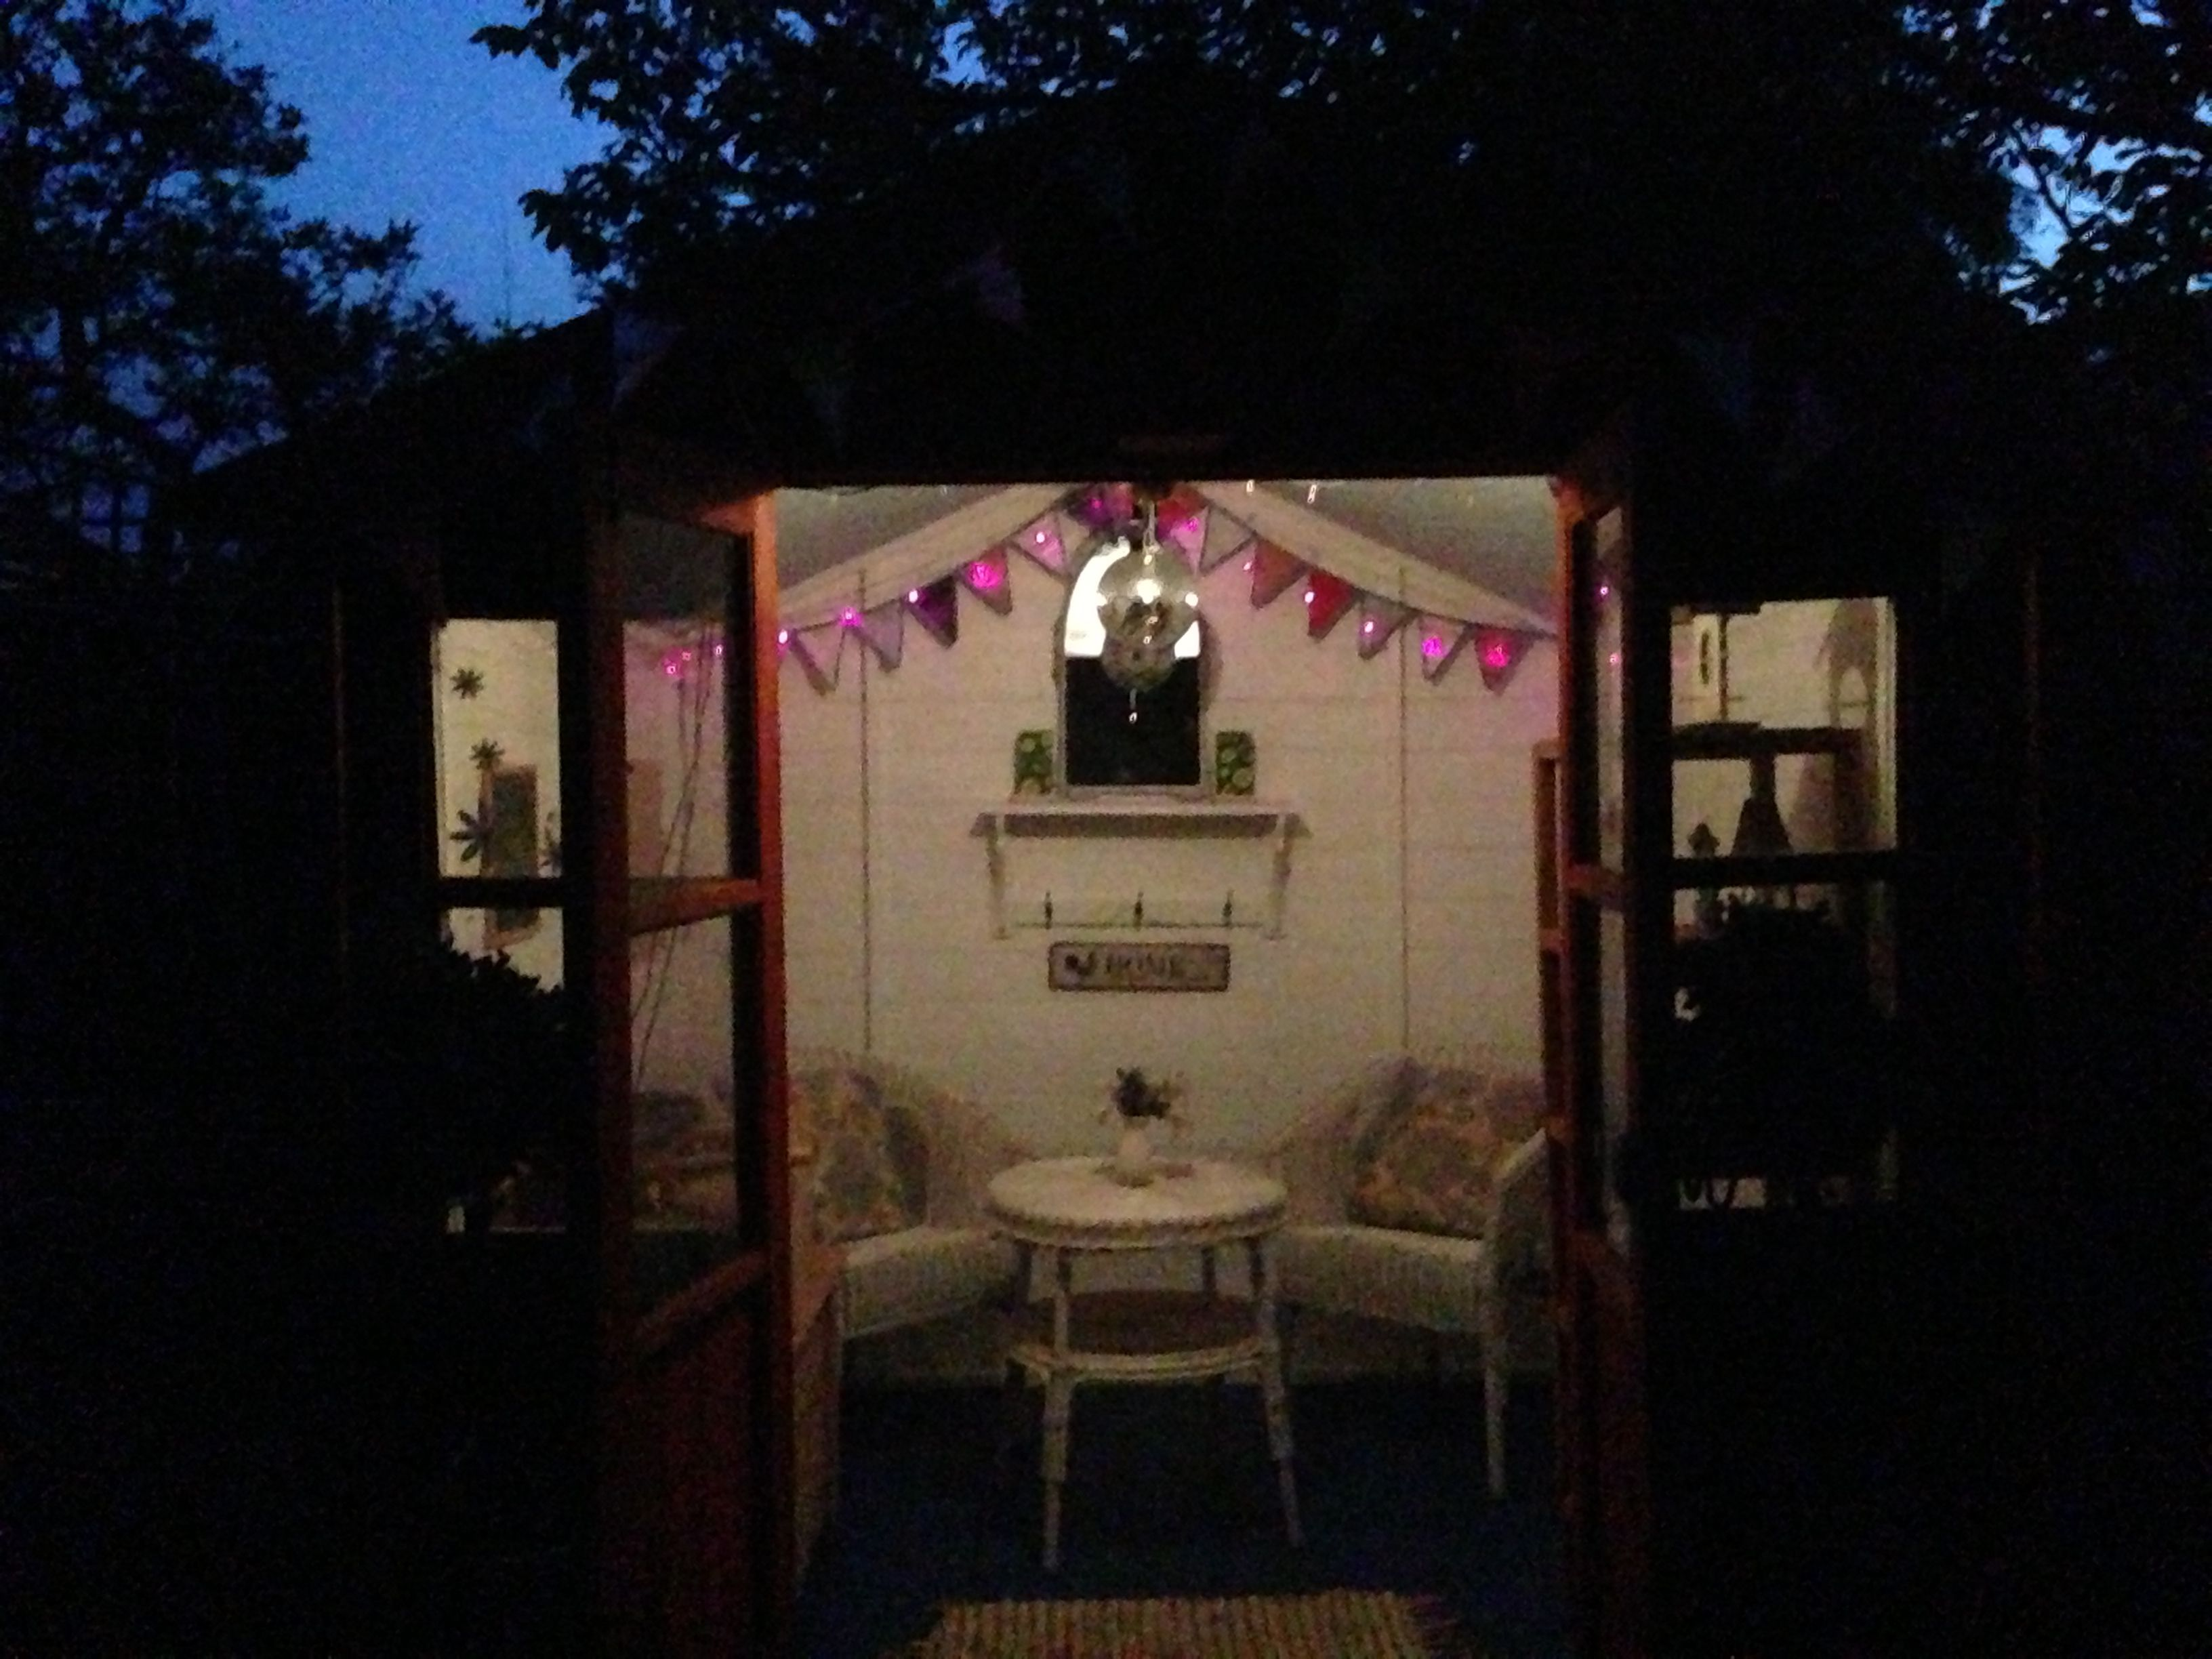 summer house lighting. My Newly Decorating Summerhouse Interior With Solar Lights Freshly Installed. :) Roll On Warmer Summer House Lighting